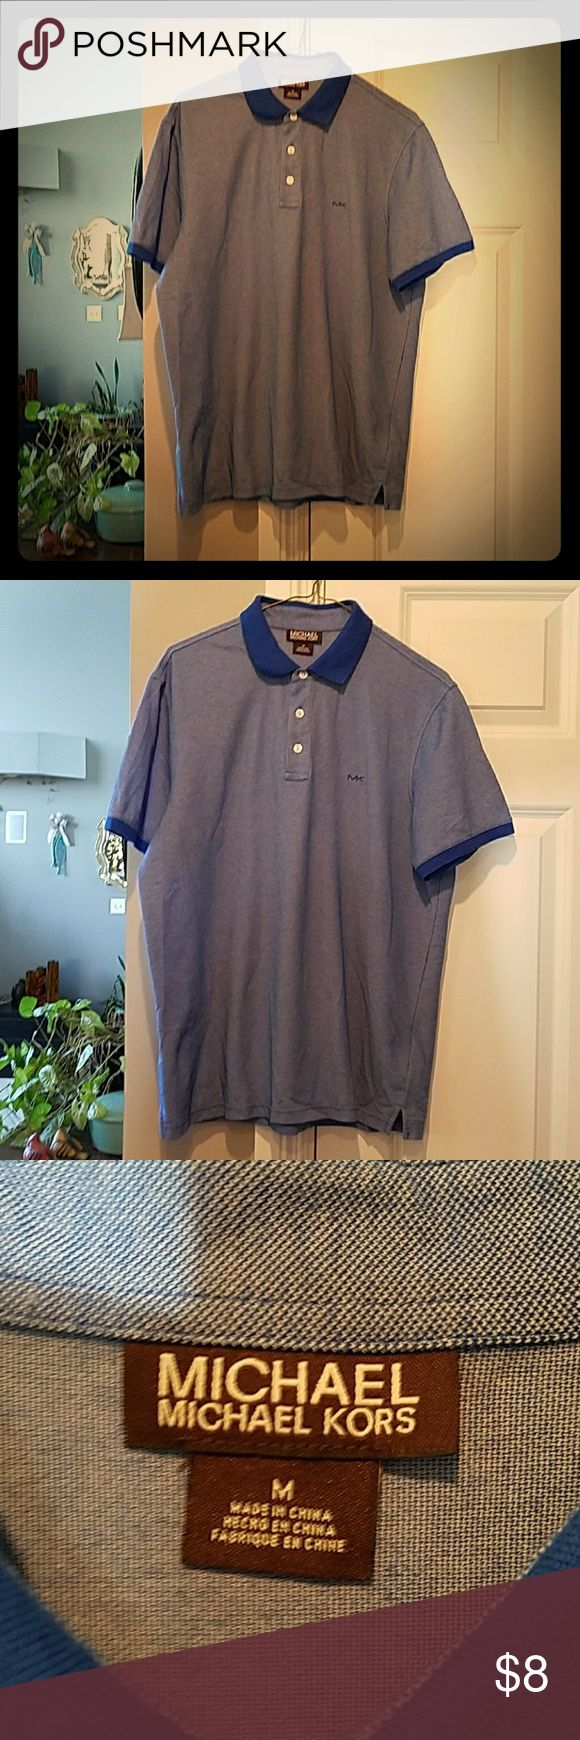 MICHAEL MICHAEL KORS MEN'S GOLF SHIRT NOWT ❣ MICHAEL MICHAEL KORS MEDIUM MEN'S GOLF SHIRT NOWT ❣BOUGHT FOR MY SON, BUT DIDN'T FIT HIM. BRAND NEW NEVER WORN PERFECT CONDITION OF COURSE ❣NICE LOOKING MAN'S SHIRT.....#HEWILLLOOKFAB ❗❗❗❗ MICHAEL MICHAEL KORS Shirts